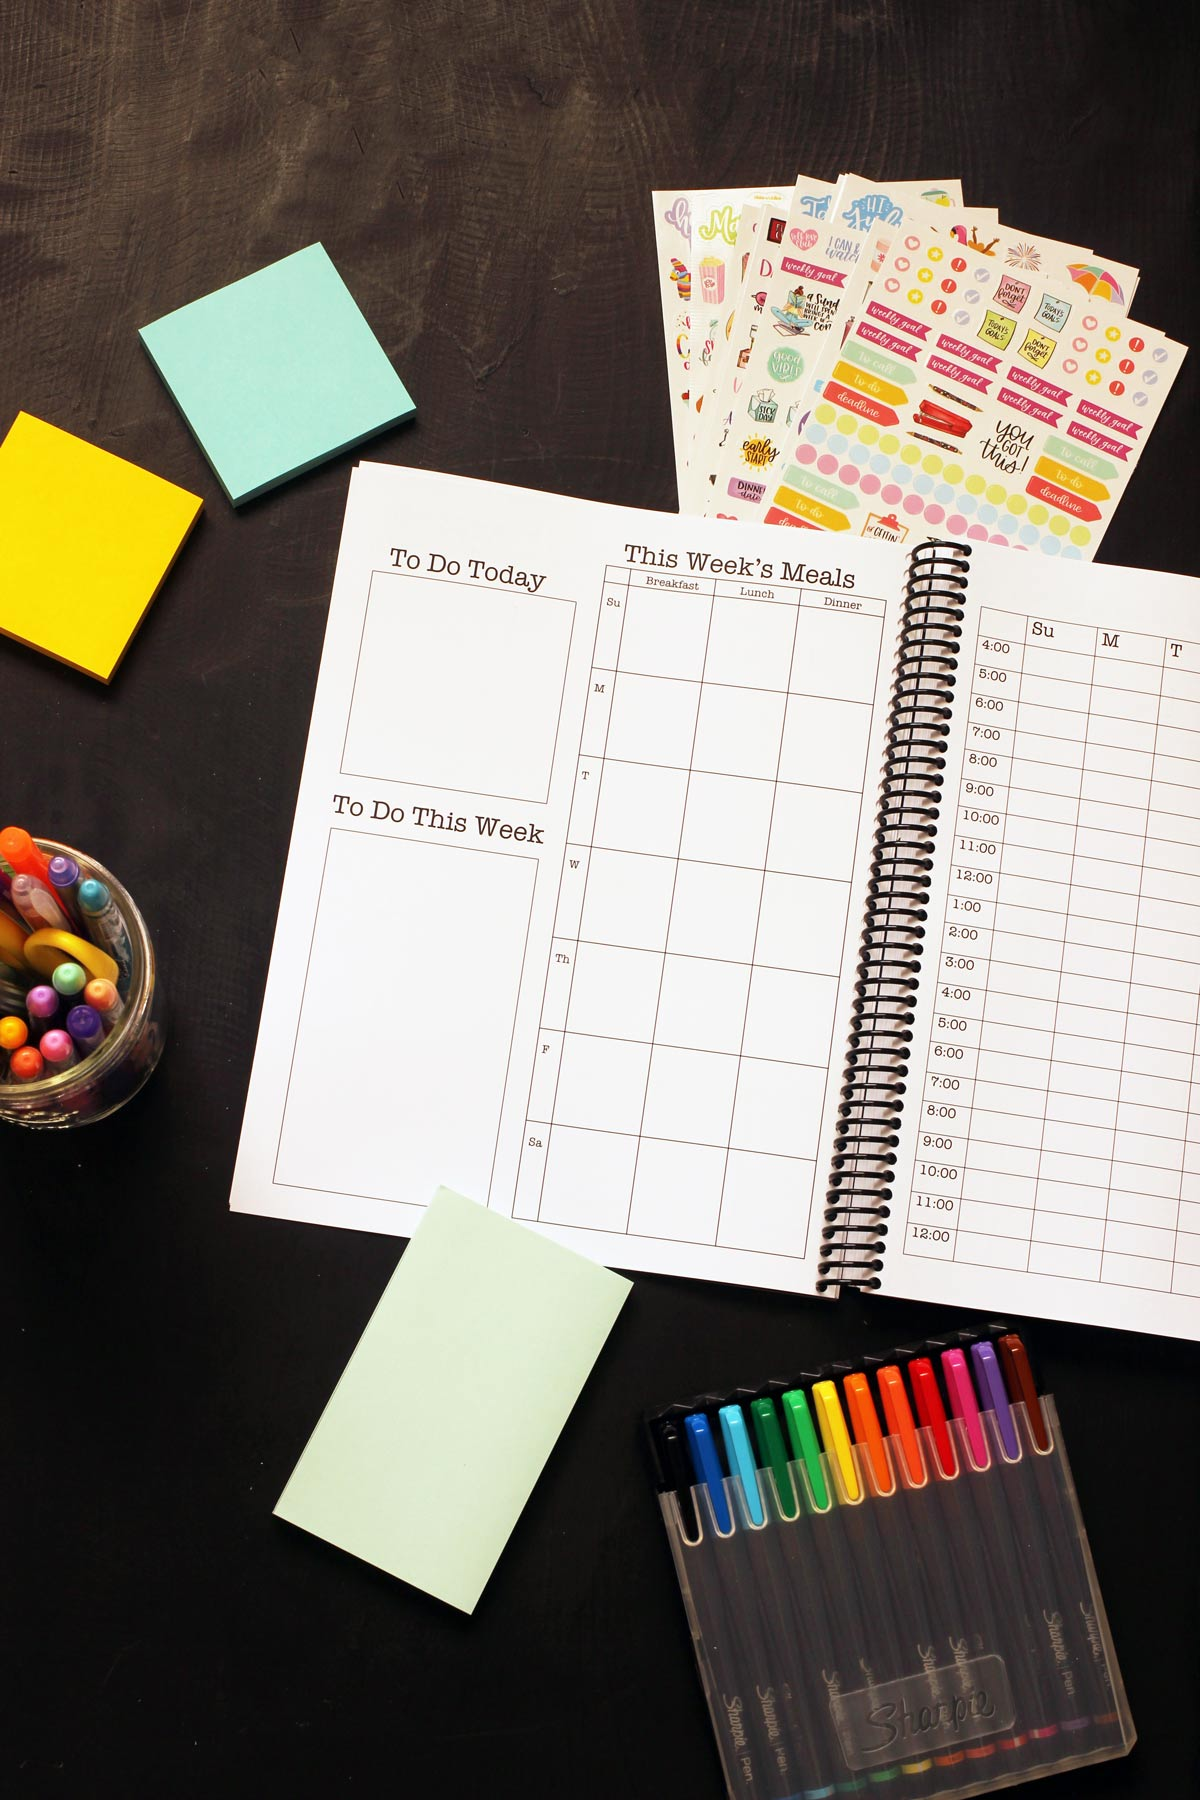 open Print & Go Planner with weekly meal plan blanks on table with stickers, post-it notes, and markers.